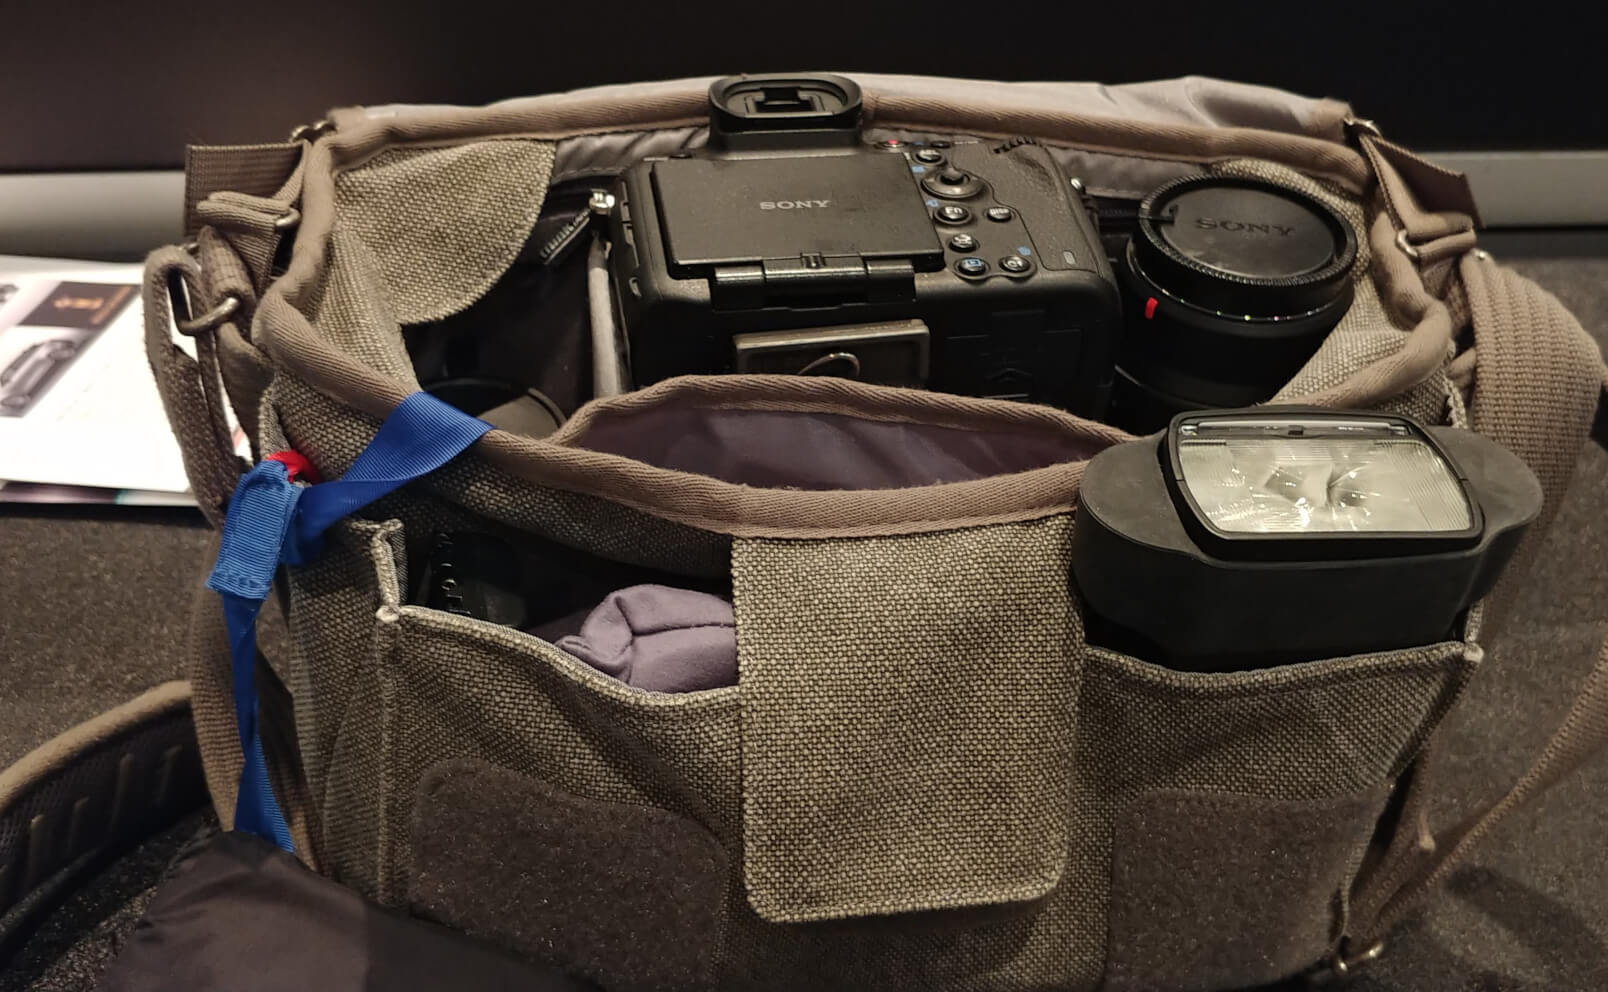 Retrospective 7 camera bag by think tank